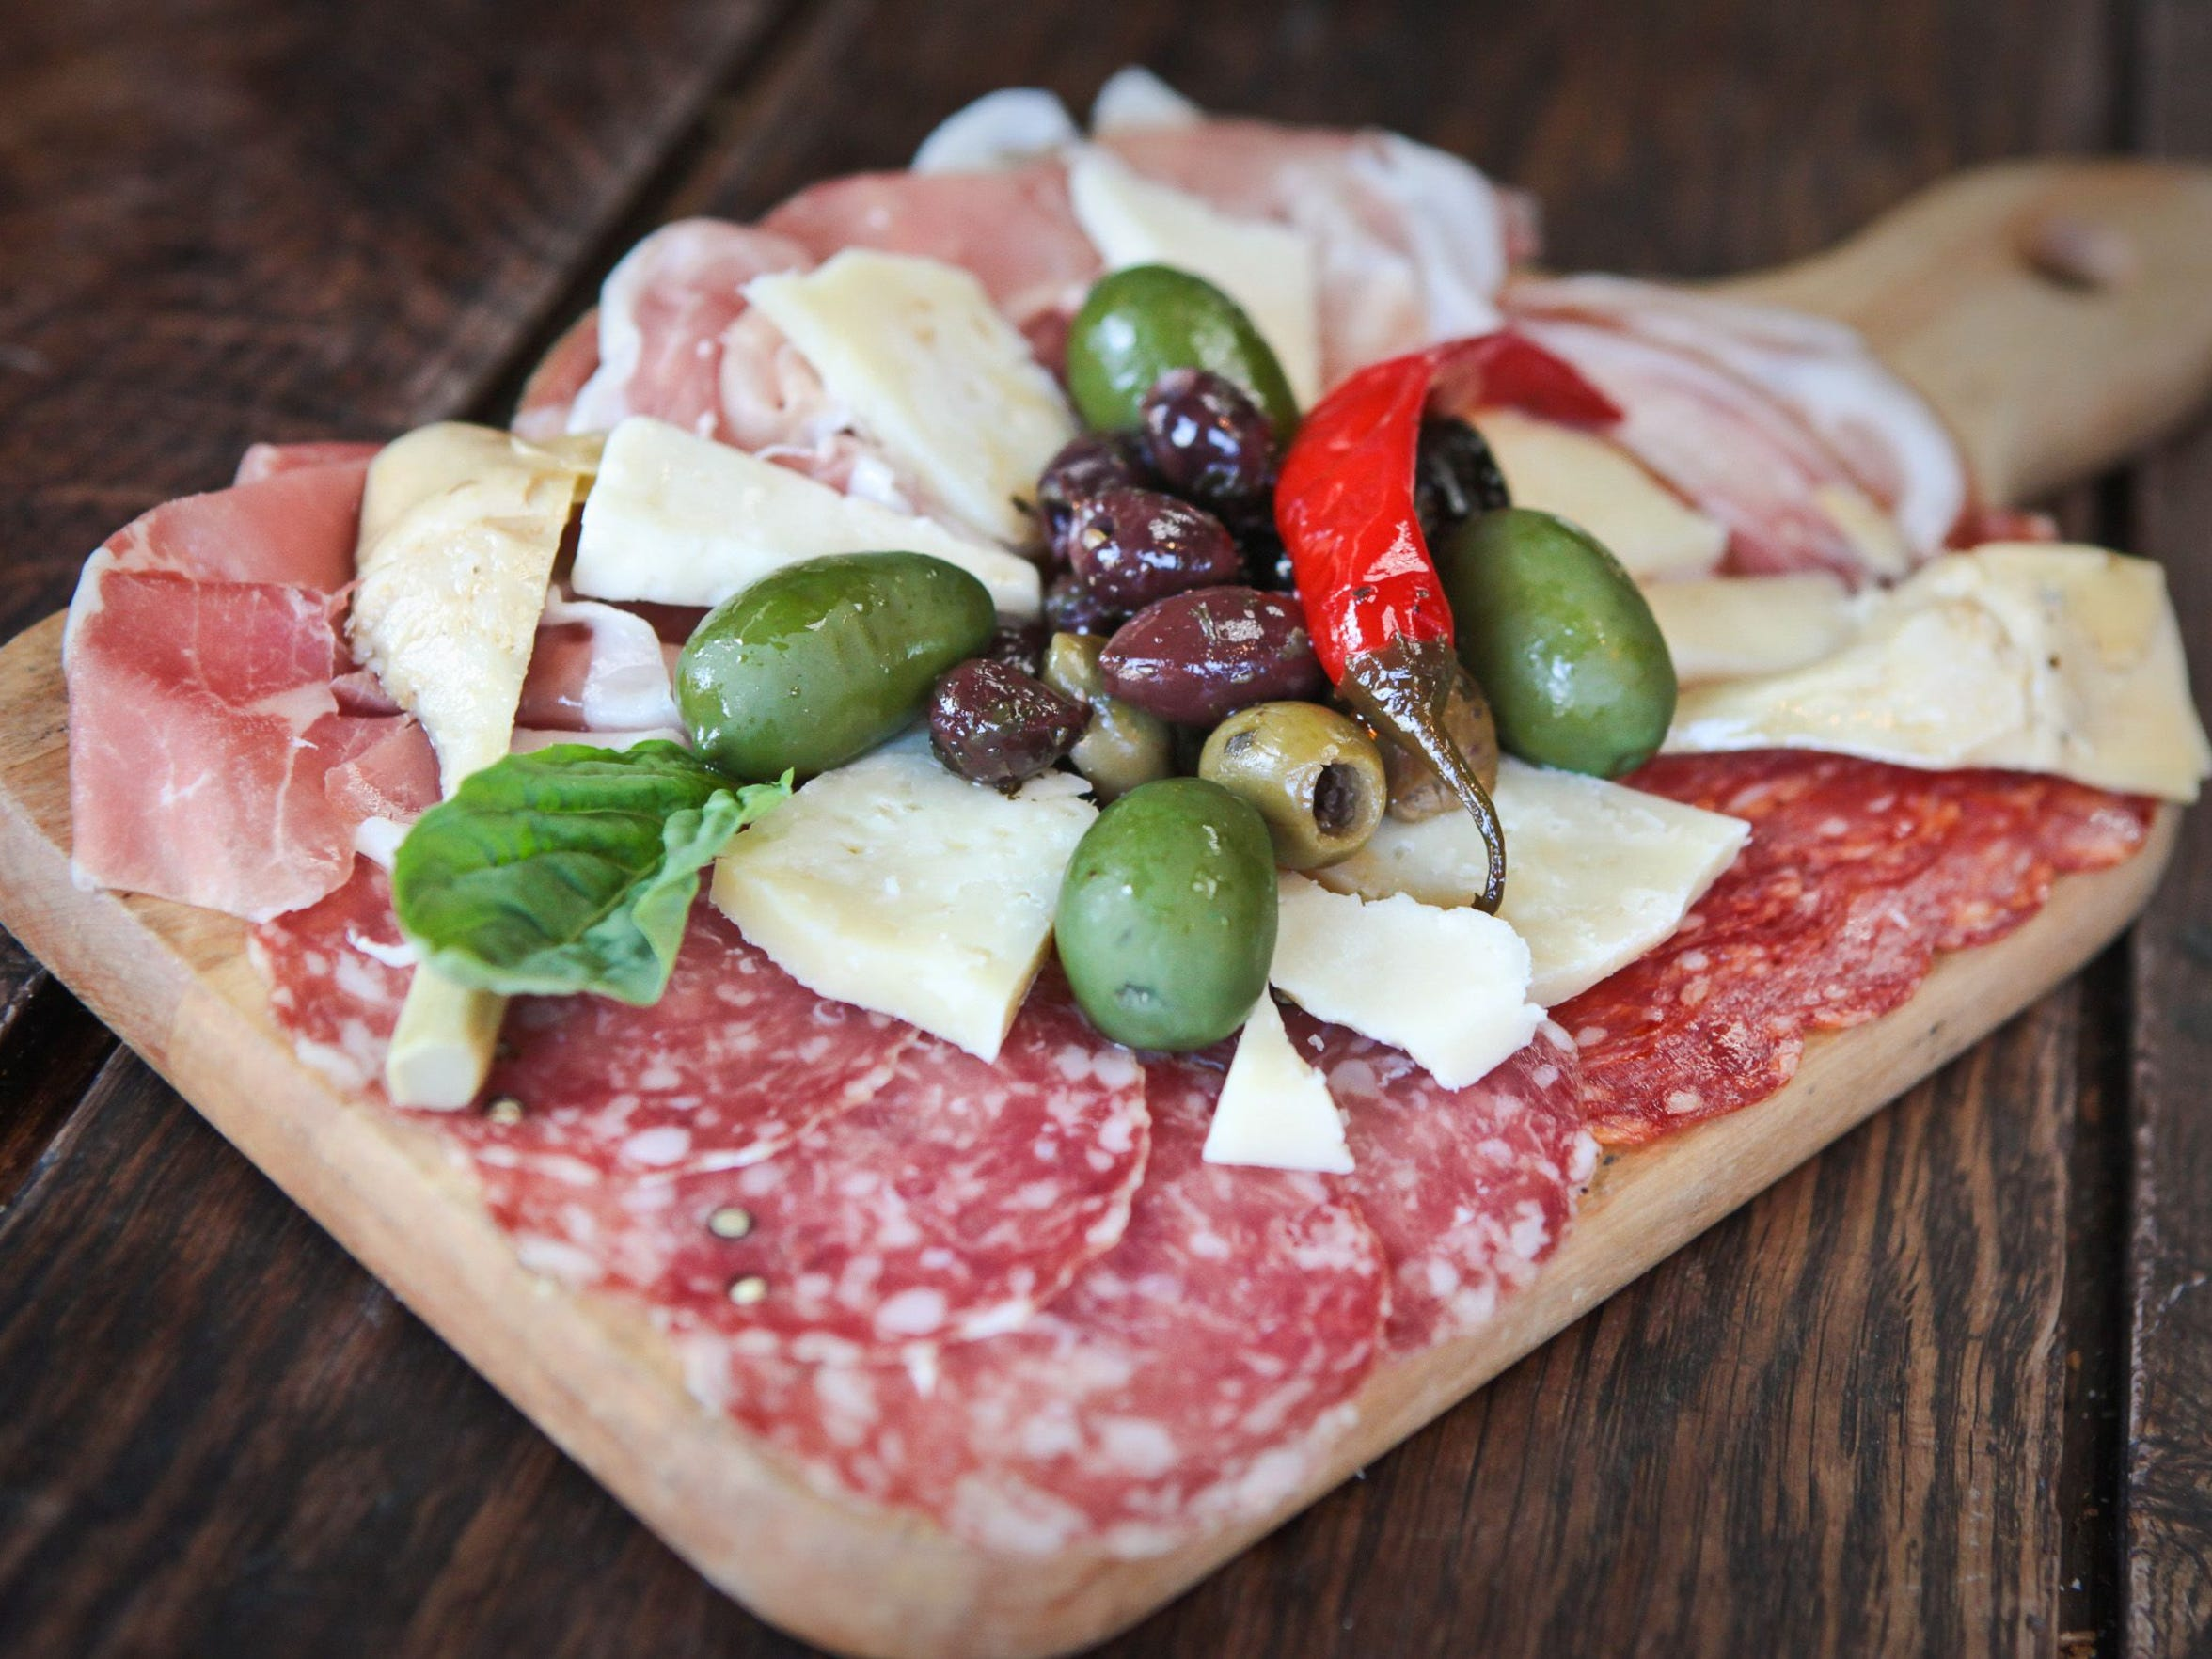 Antipasto from Andreoli Italian Grocer in Scottsdale.